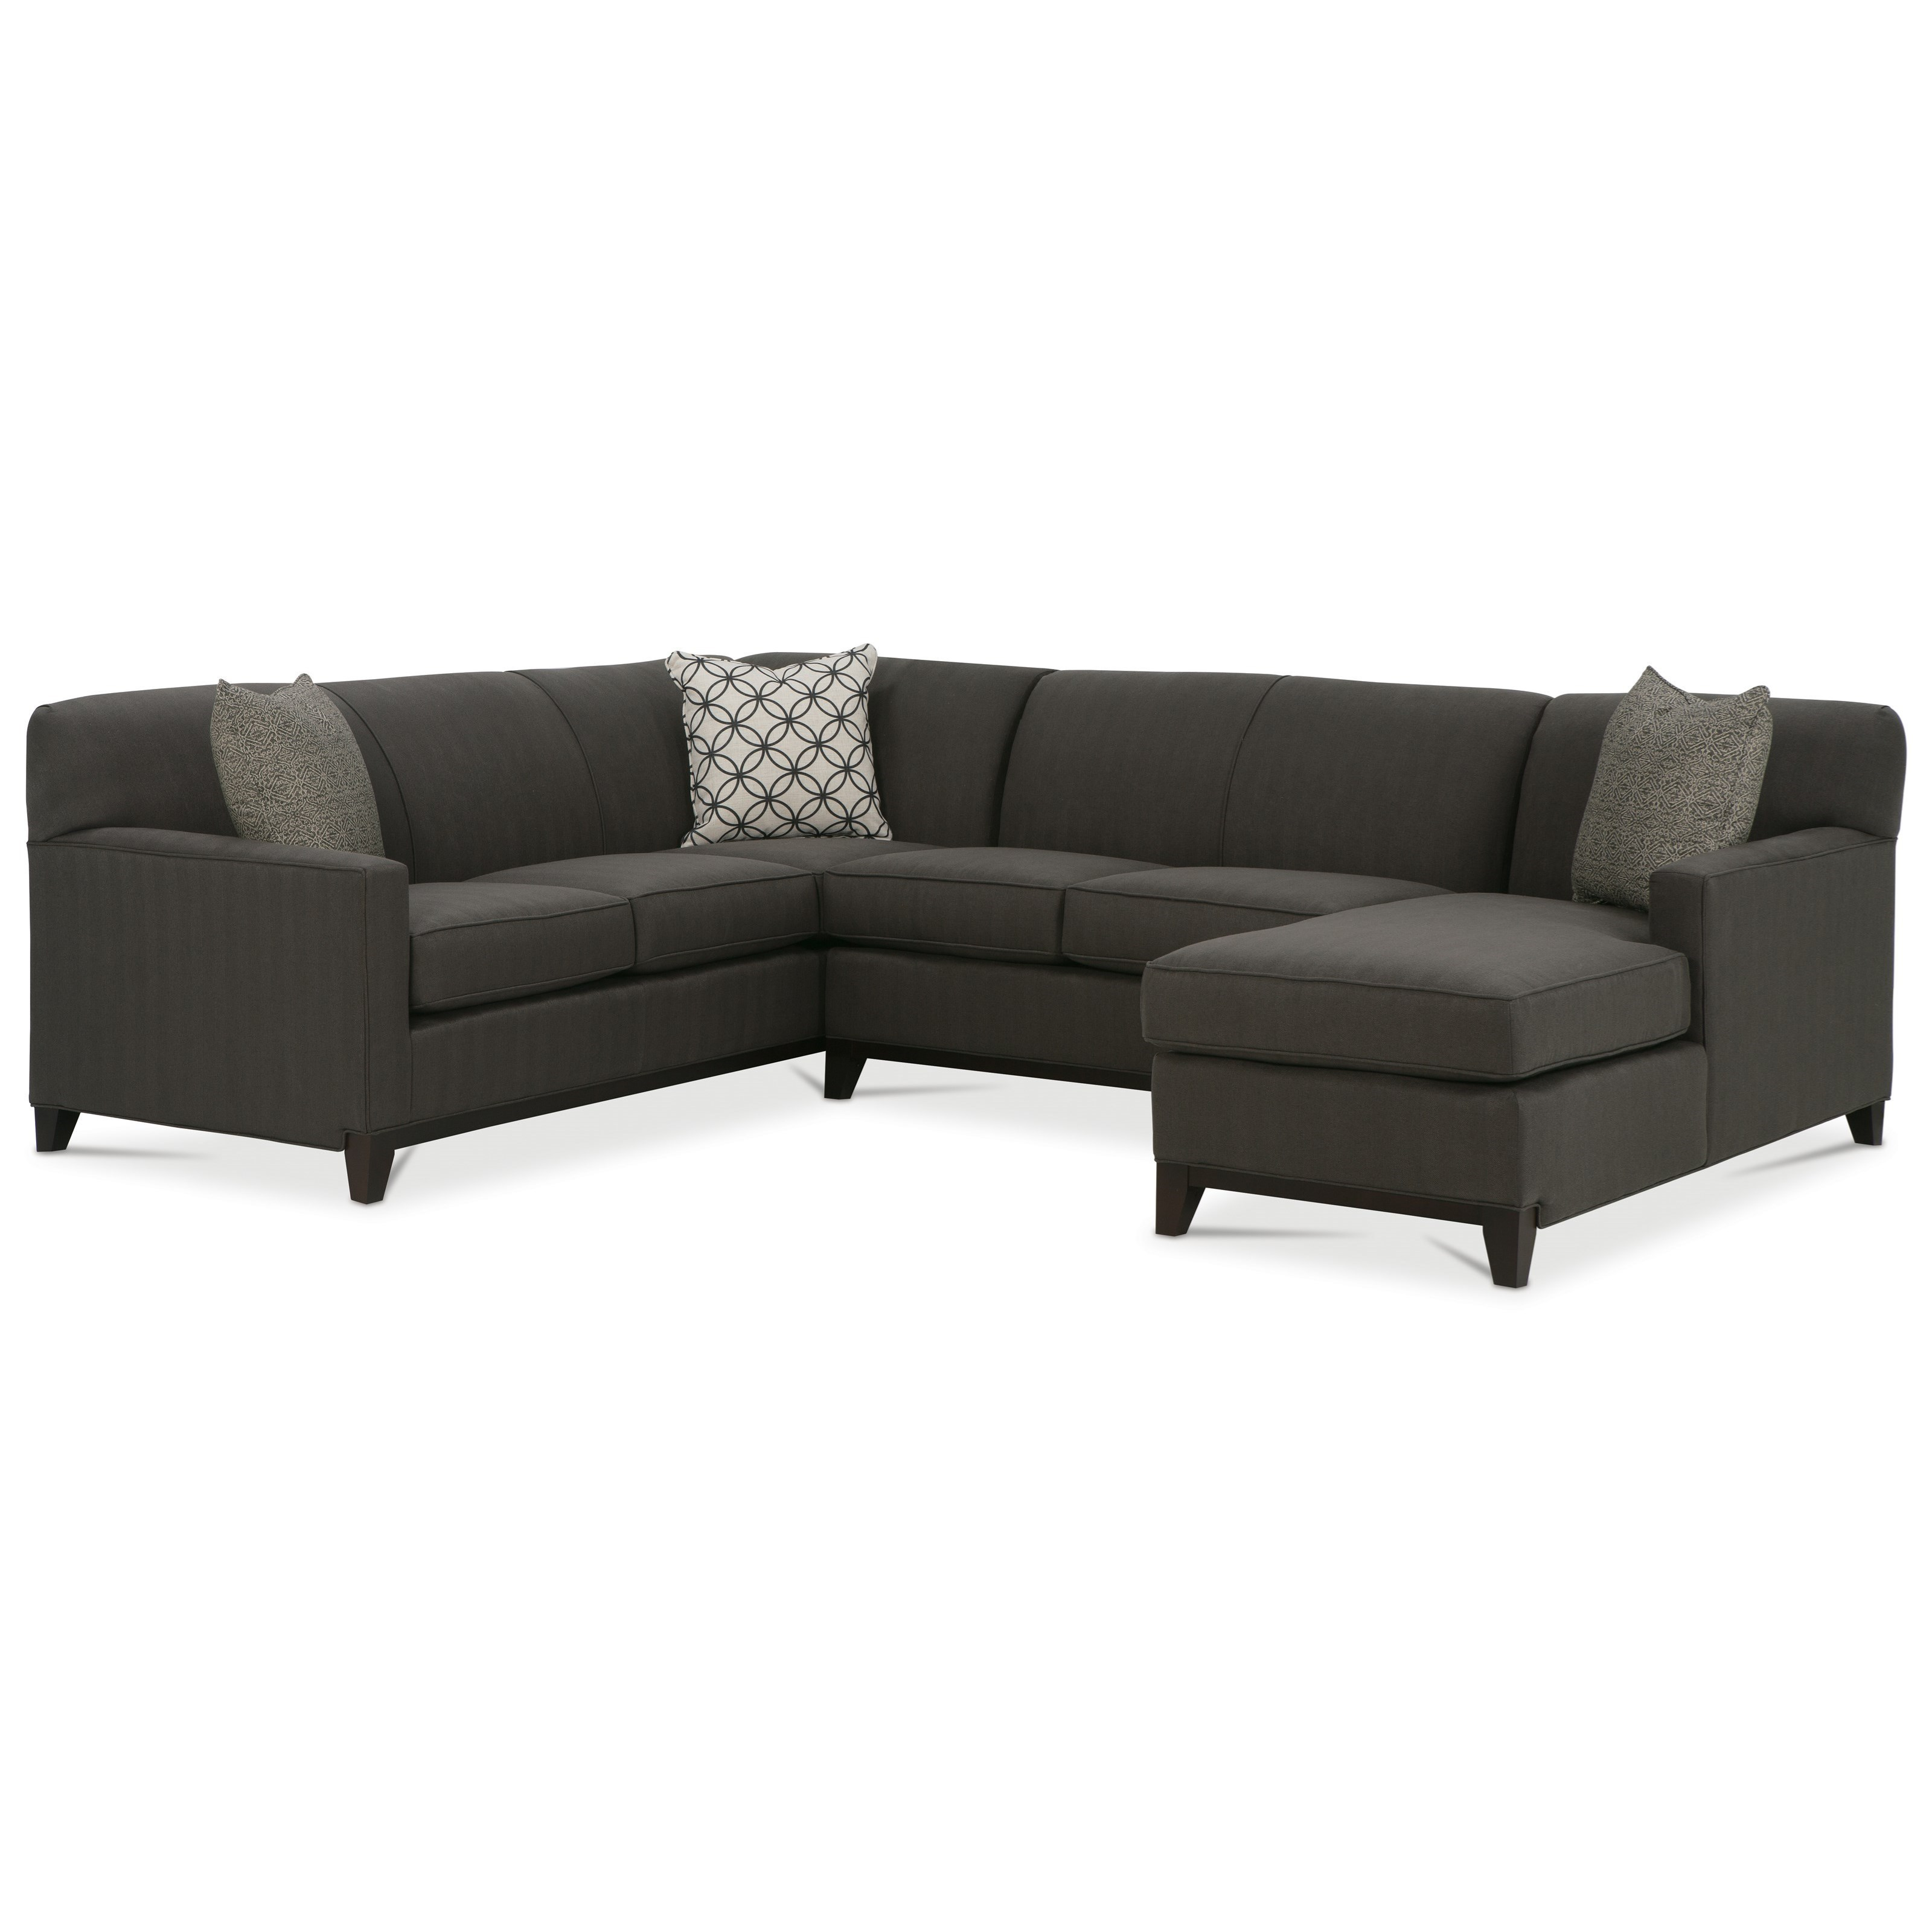 rowe masquerade sectional sofa sofast sofas brady by furniture